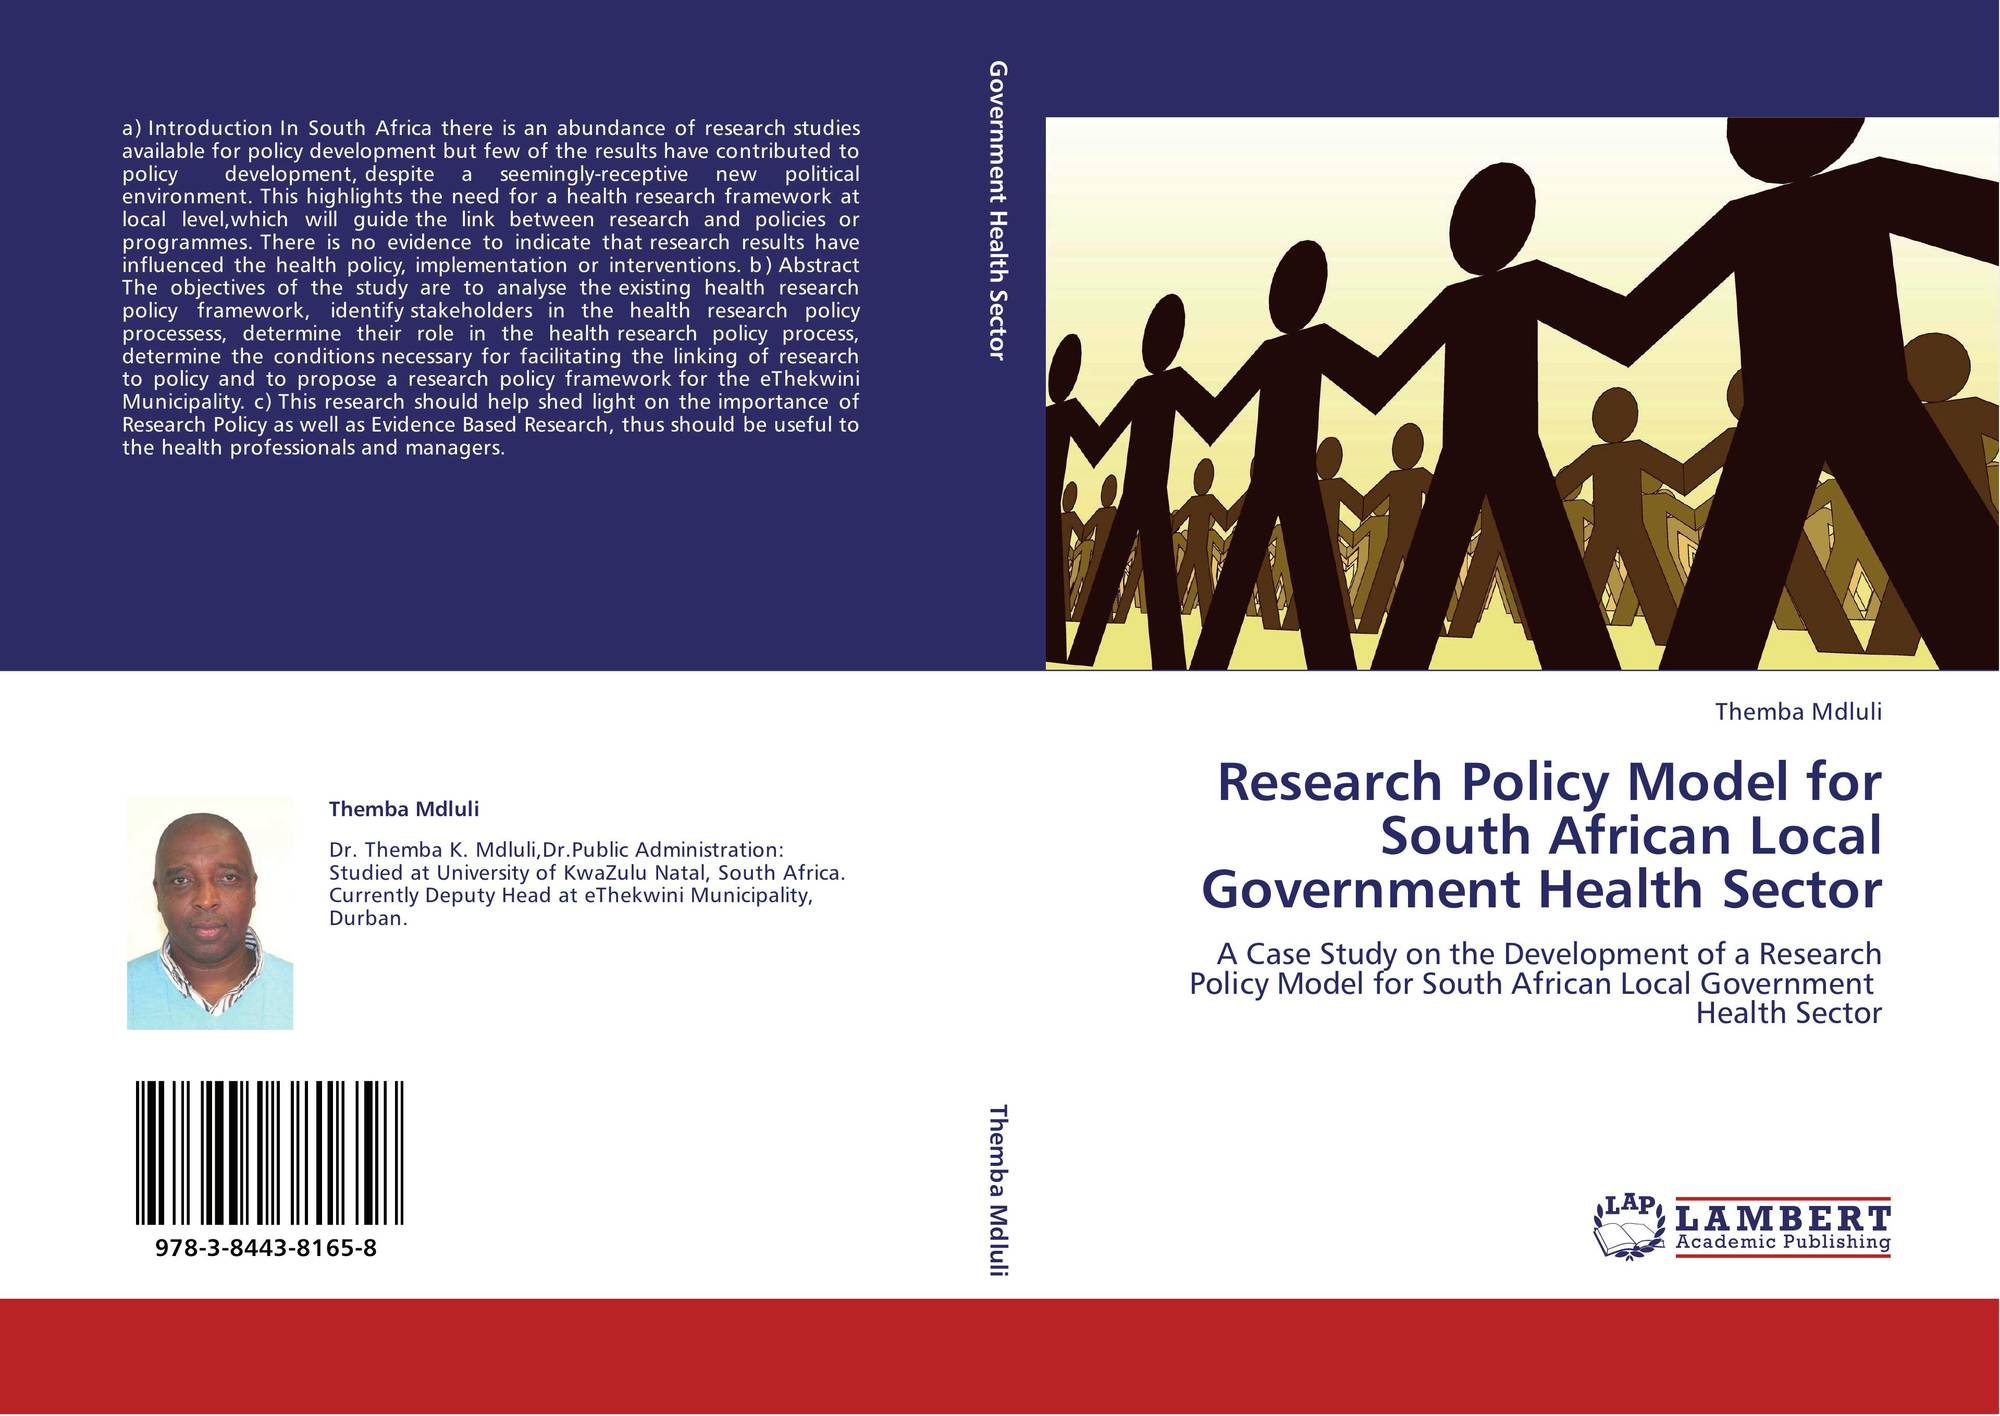 an analysis of government influence on health policy in america Government stakeholders influences public policy the american people expect that policy influences government stakeholders the date is september 11, 2001 the world in american was munger presents a cautious process for analyzing policy in the initial stage of analysis you must.